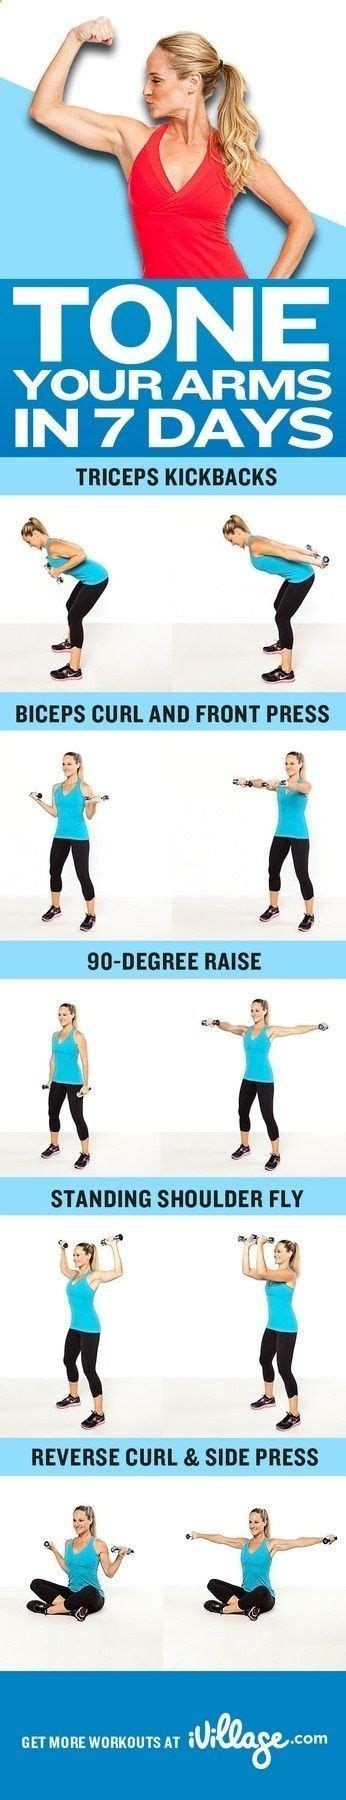 how to get toned arms tone your arms in 7 days pregnancy pinterest